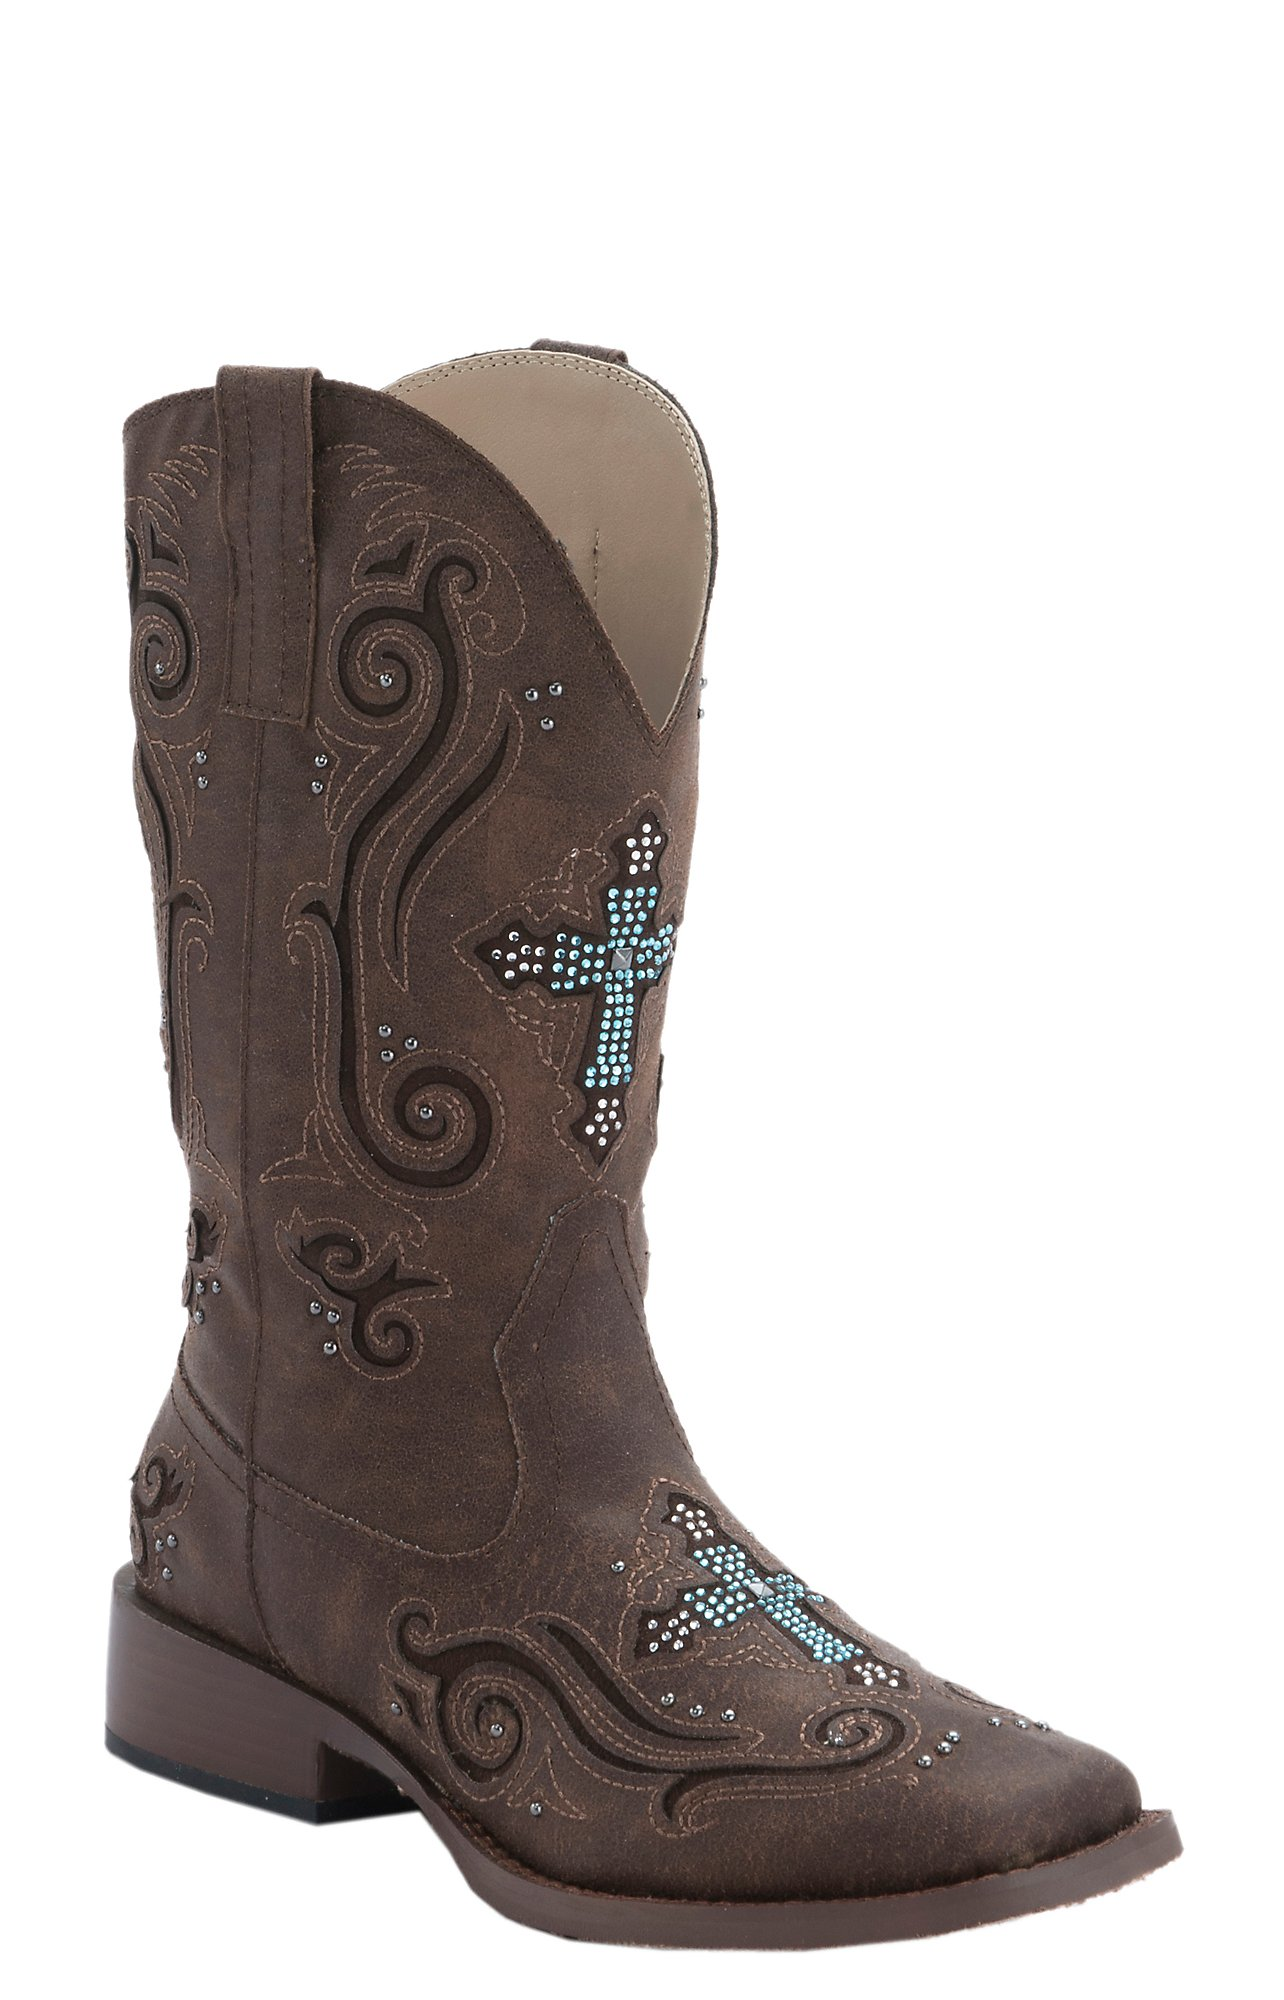 Shop Cavender's women's boots and shoes on sale today. Find popular western wear brands and styles online at a great discount. Free shipping on women's boots and shoes.